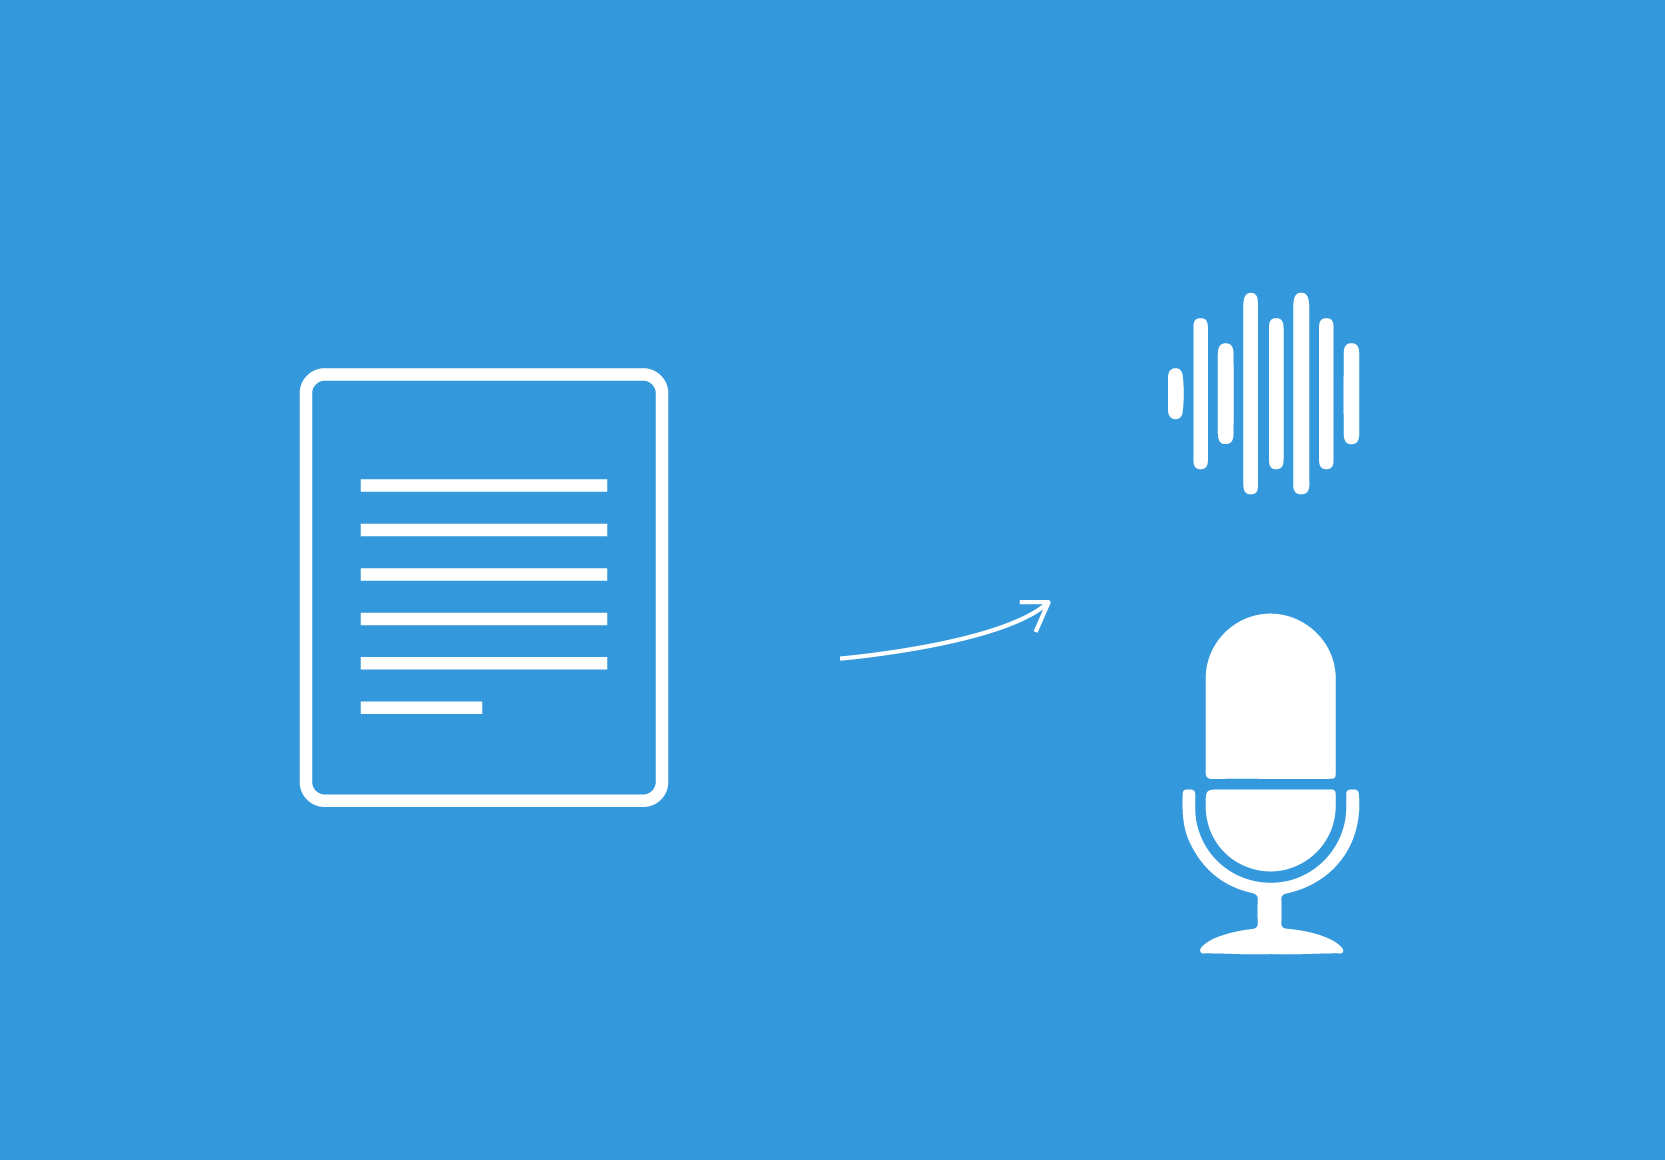 Icon for state of the art Nepali Text to speech or voice synthesis.